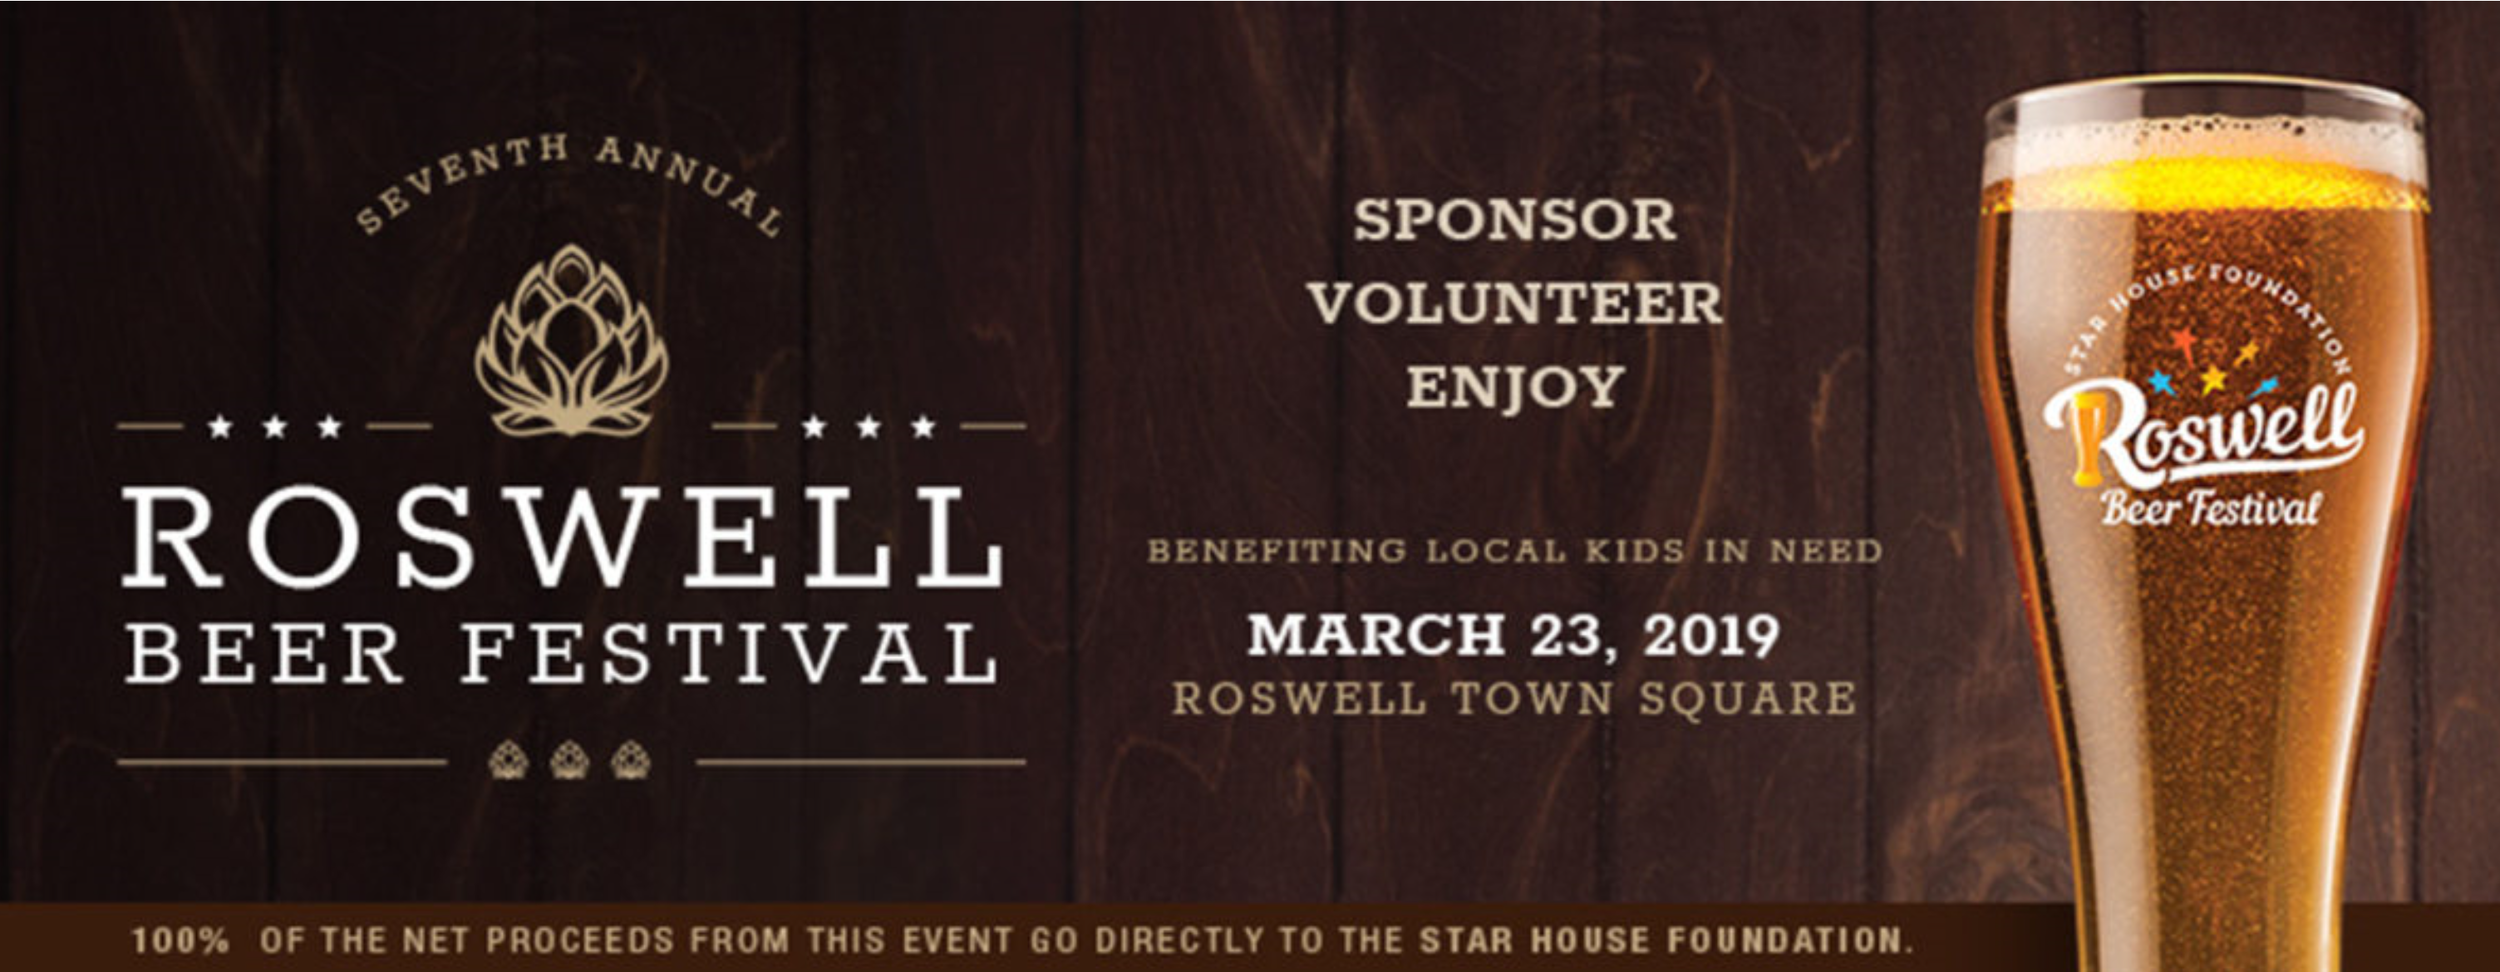 beer_festival_in_roswell_ga.png